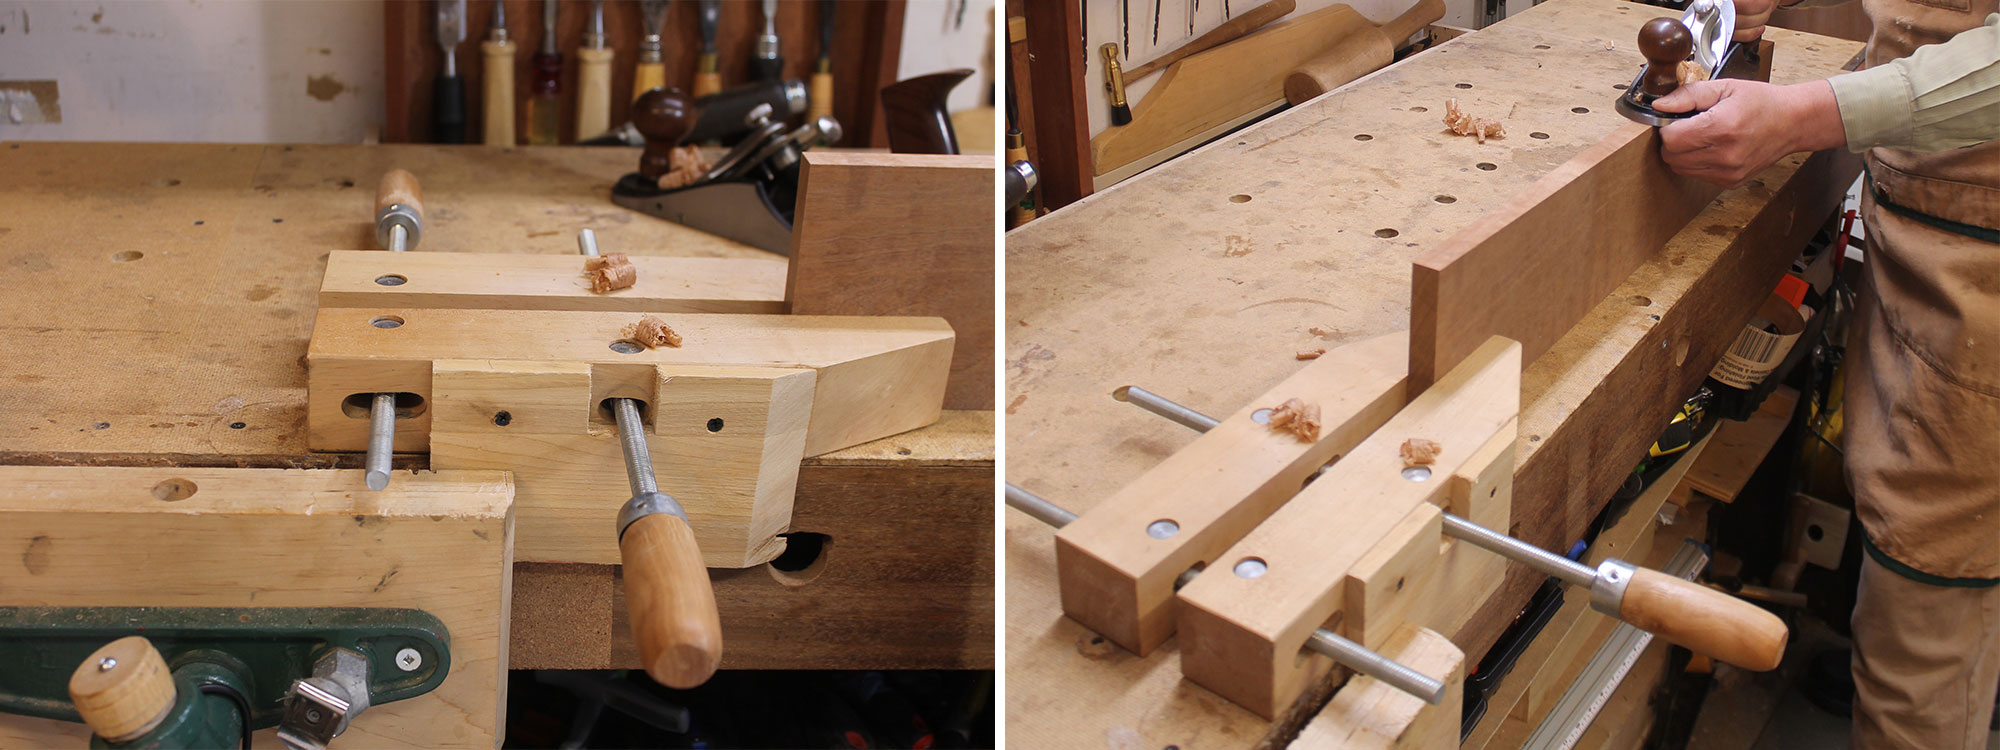 Image left: Using a handscrew with a bench vise. Image right: Using the clamp as a vise on the bench top.